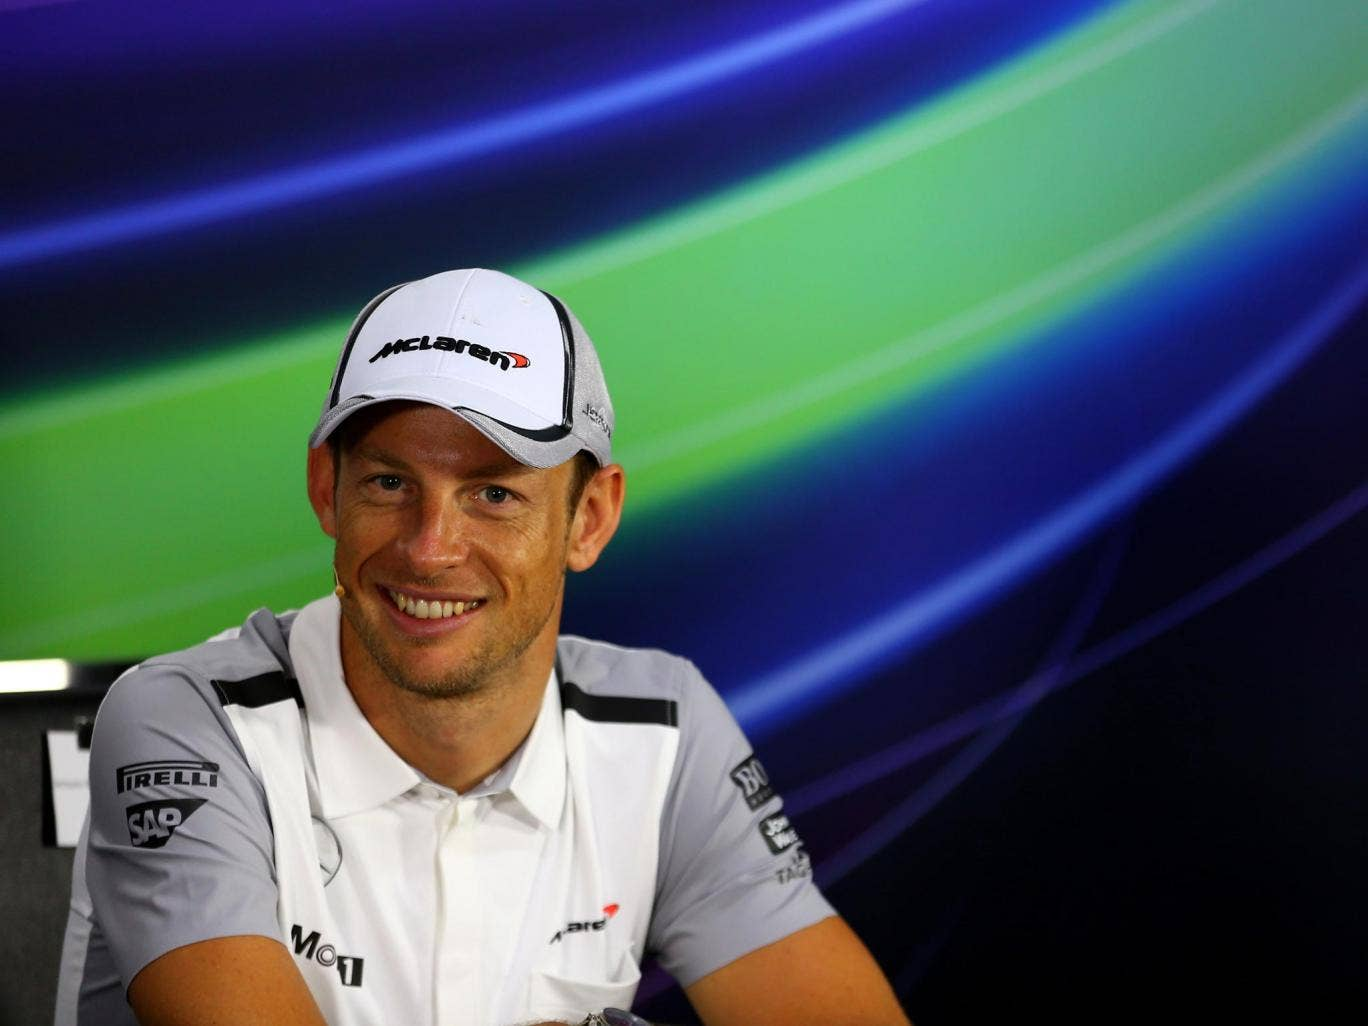 Jenson Button was finally back in the points at the last race in Monaco after finishing eighth